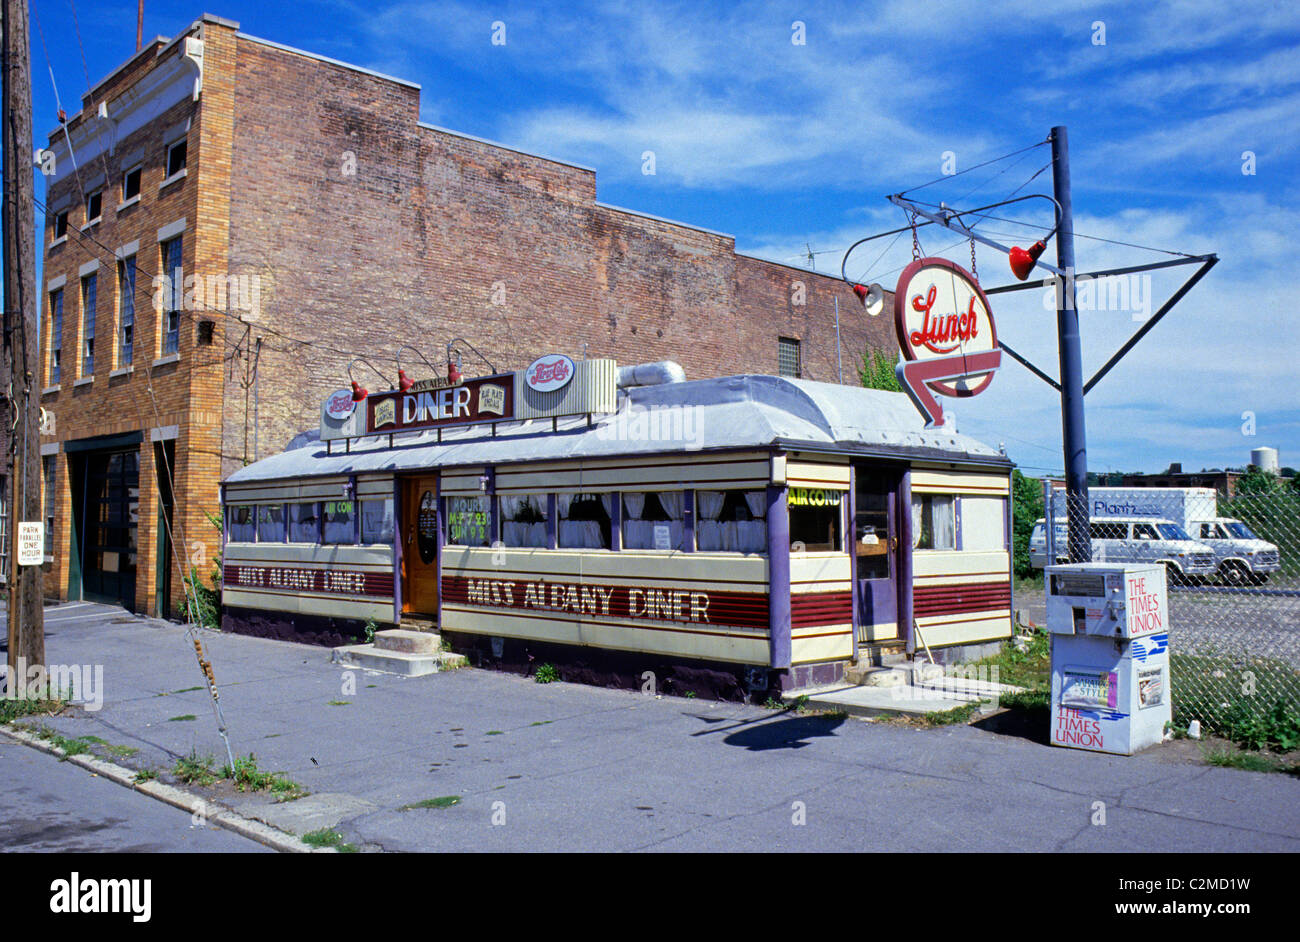 miss albany diner in albany new york a 1941 silk city diner stock photo royalty free image. Black Bedroom Furniture Sets. Home Design Ideas